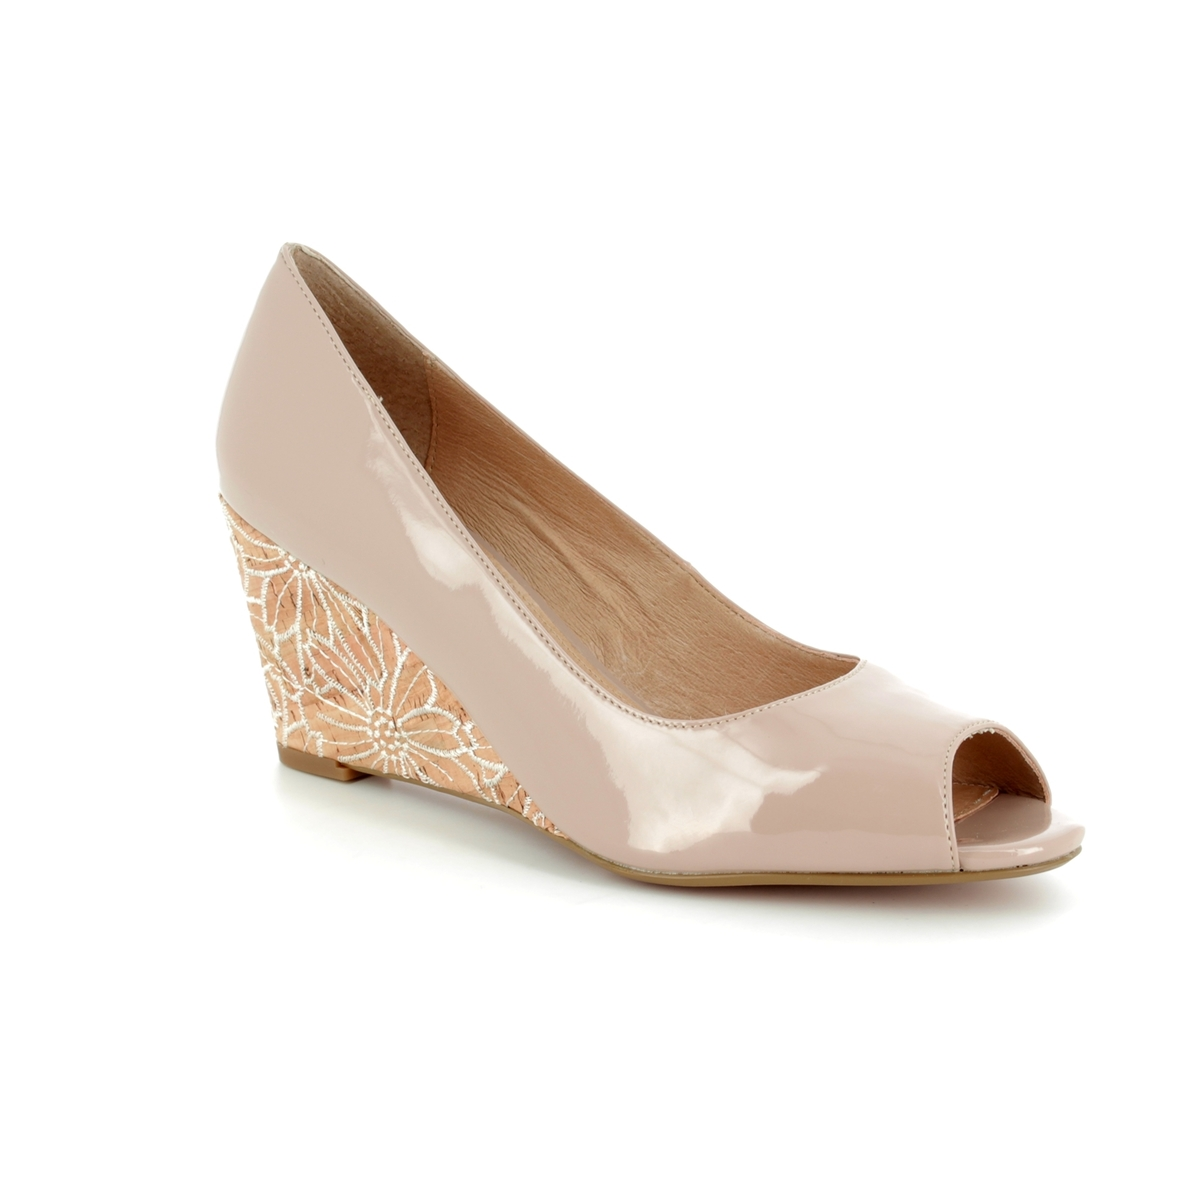 00a64a211388 Lotus Wedge Shoes - Nude Patent - 50904 56 CABINA